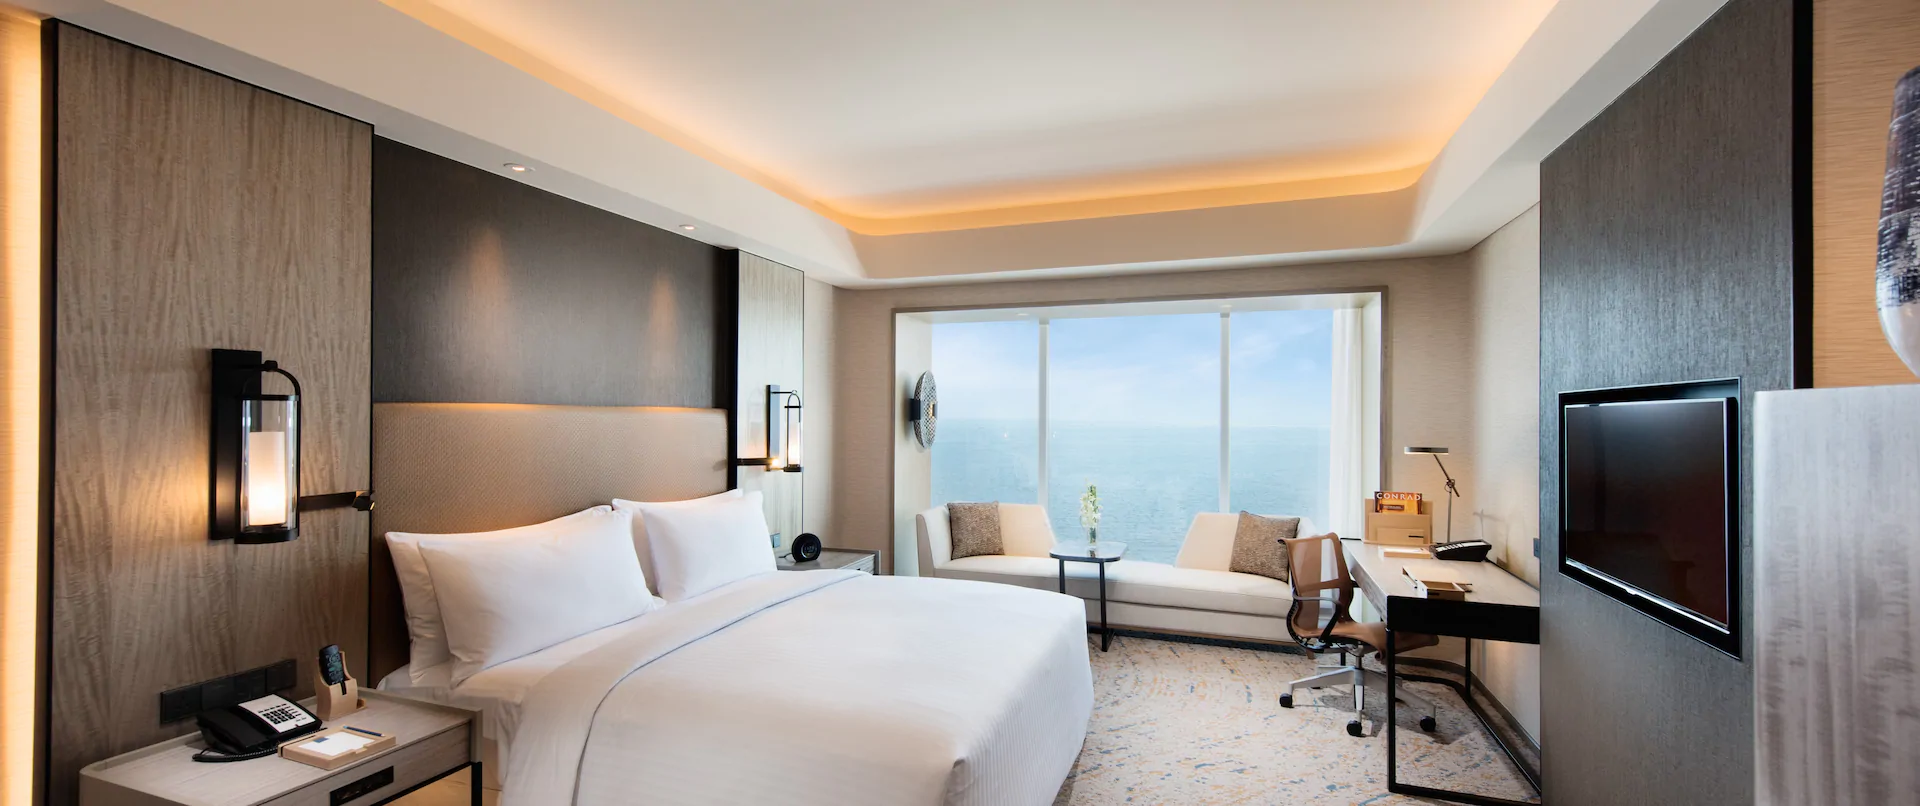 Beautiful view of Manila Bay from a deluxe room in Conrad Hotel